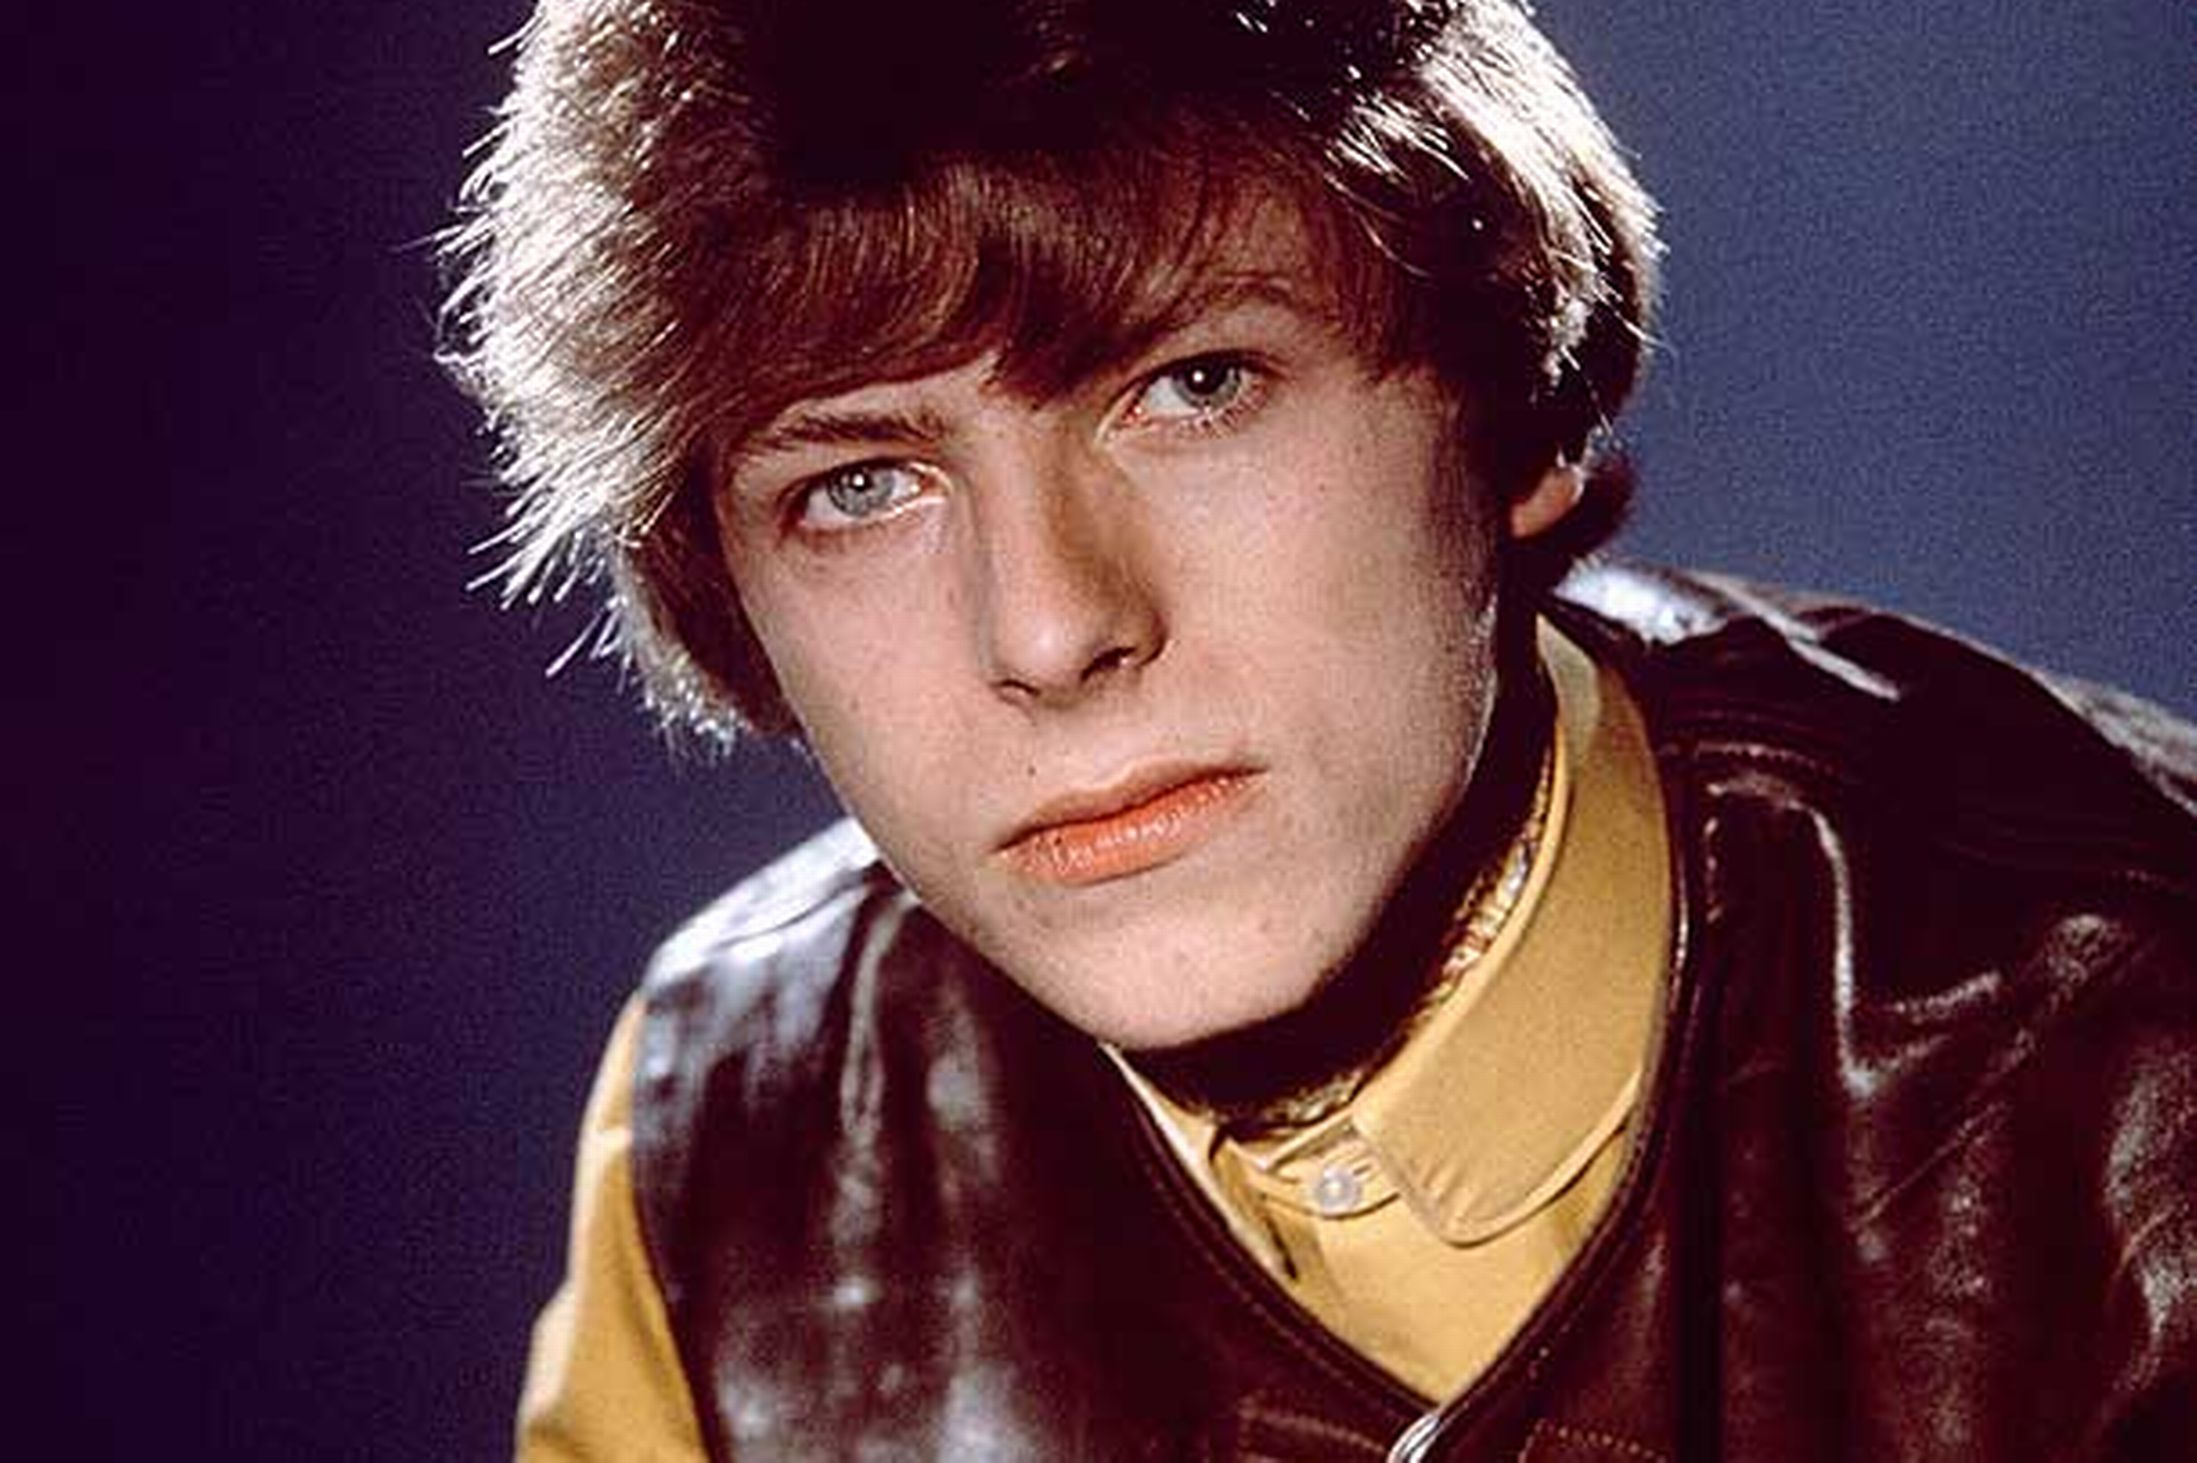 David Bowie Image-1-for-david-bowie-at-65-gallery-323980700